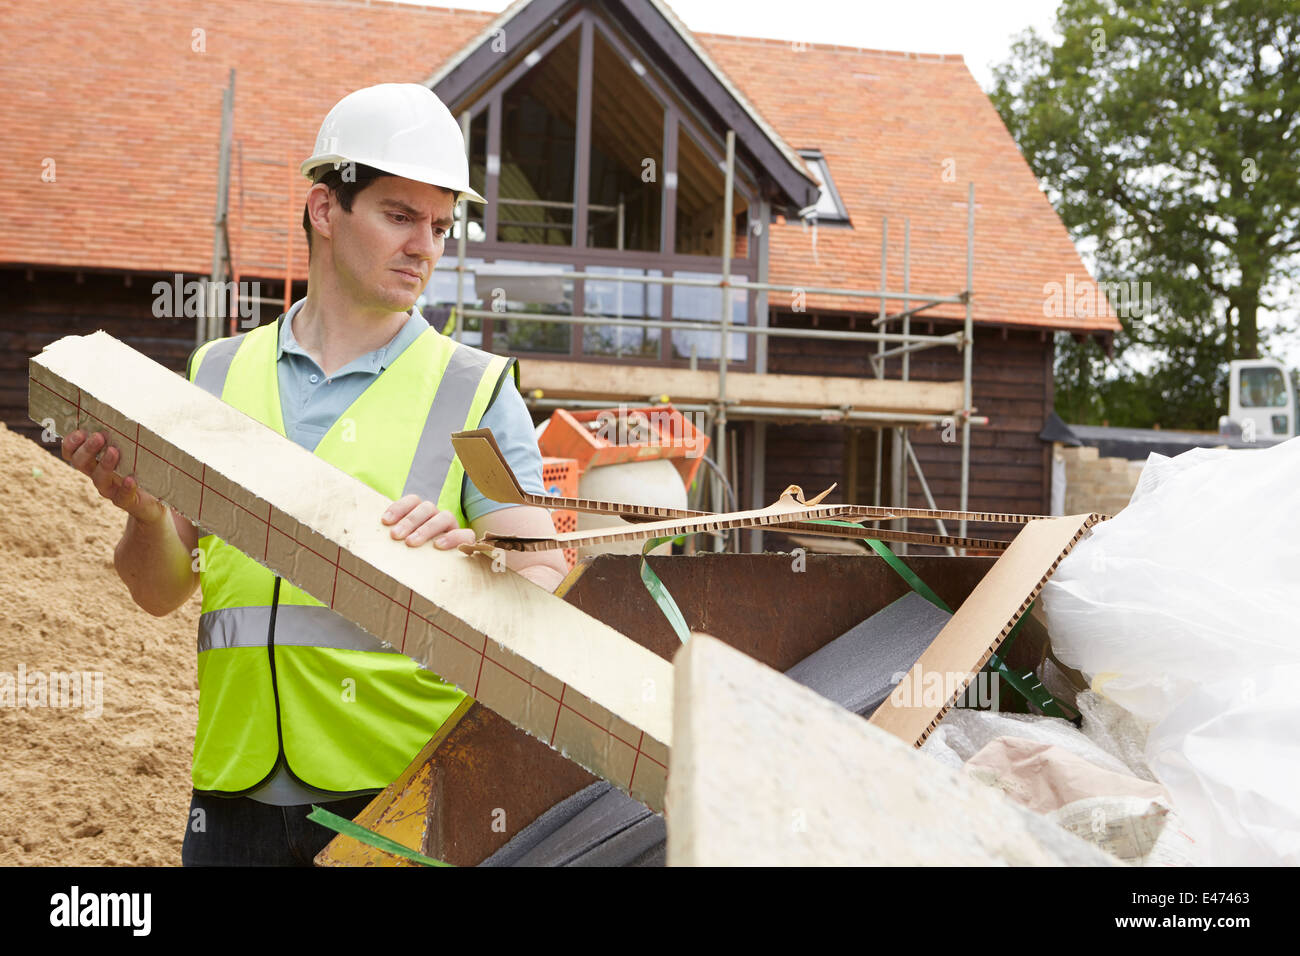 Builder Throwing Waste Into Skip On Construction Site - Stock Image